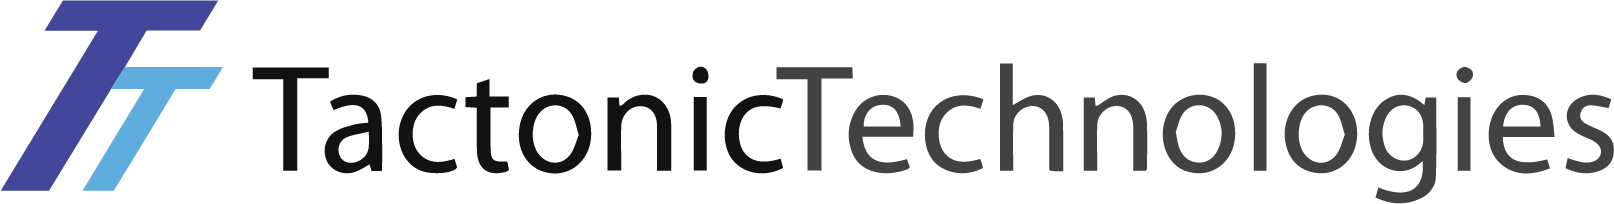 Tactonic Technologies